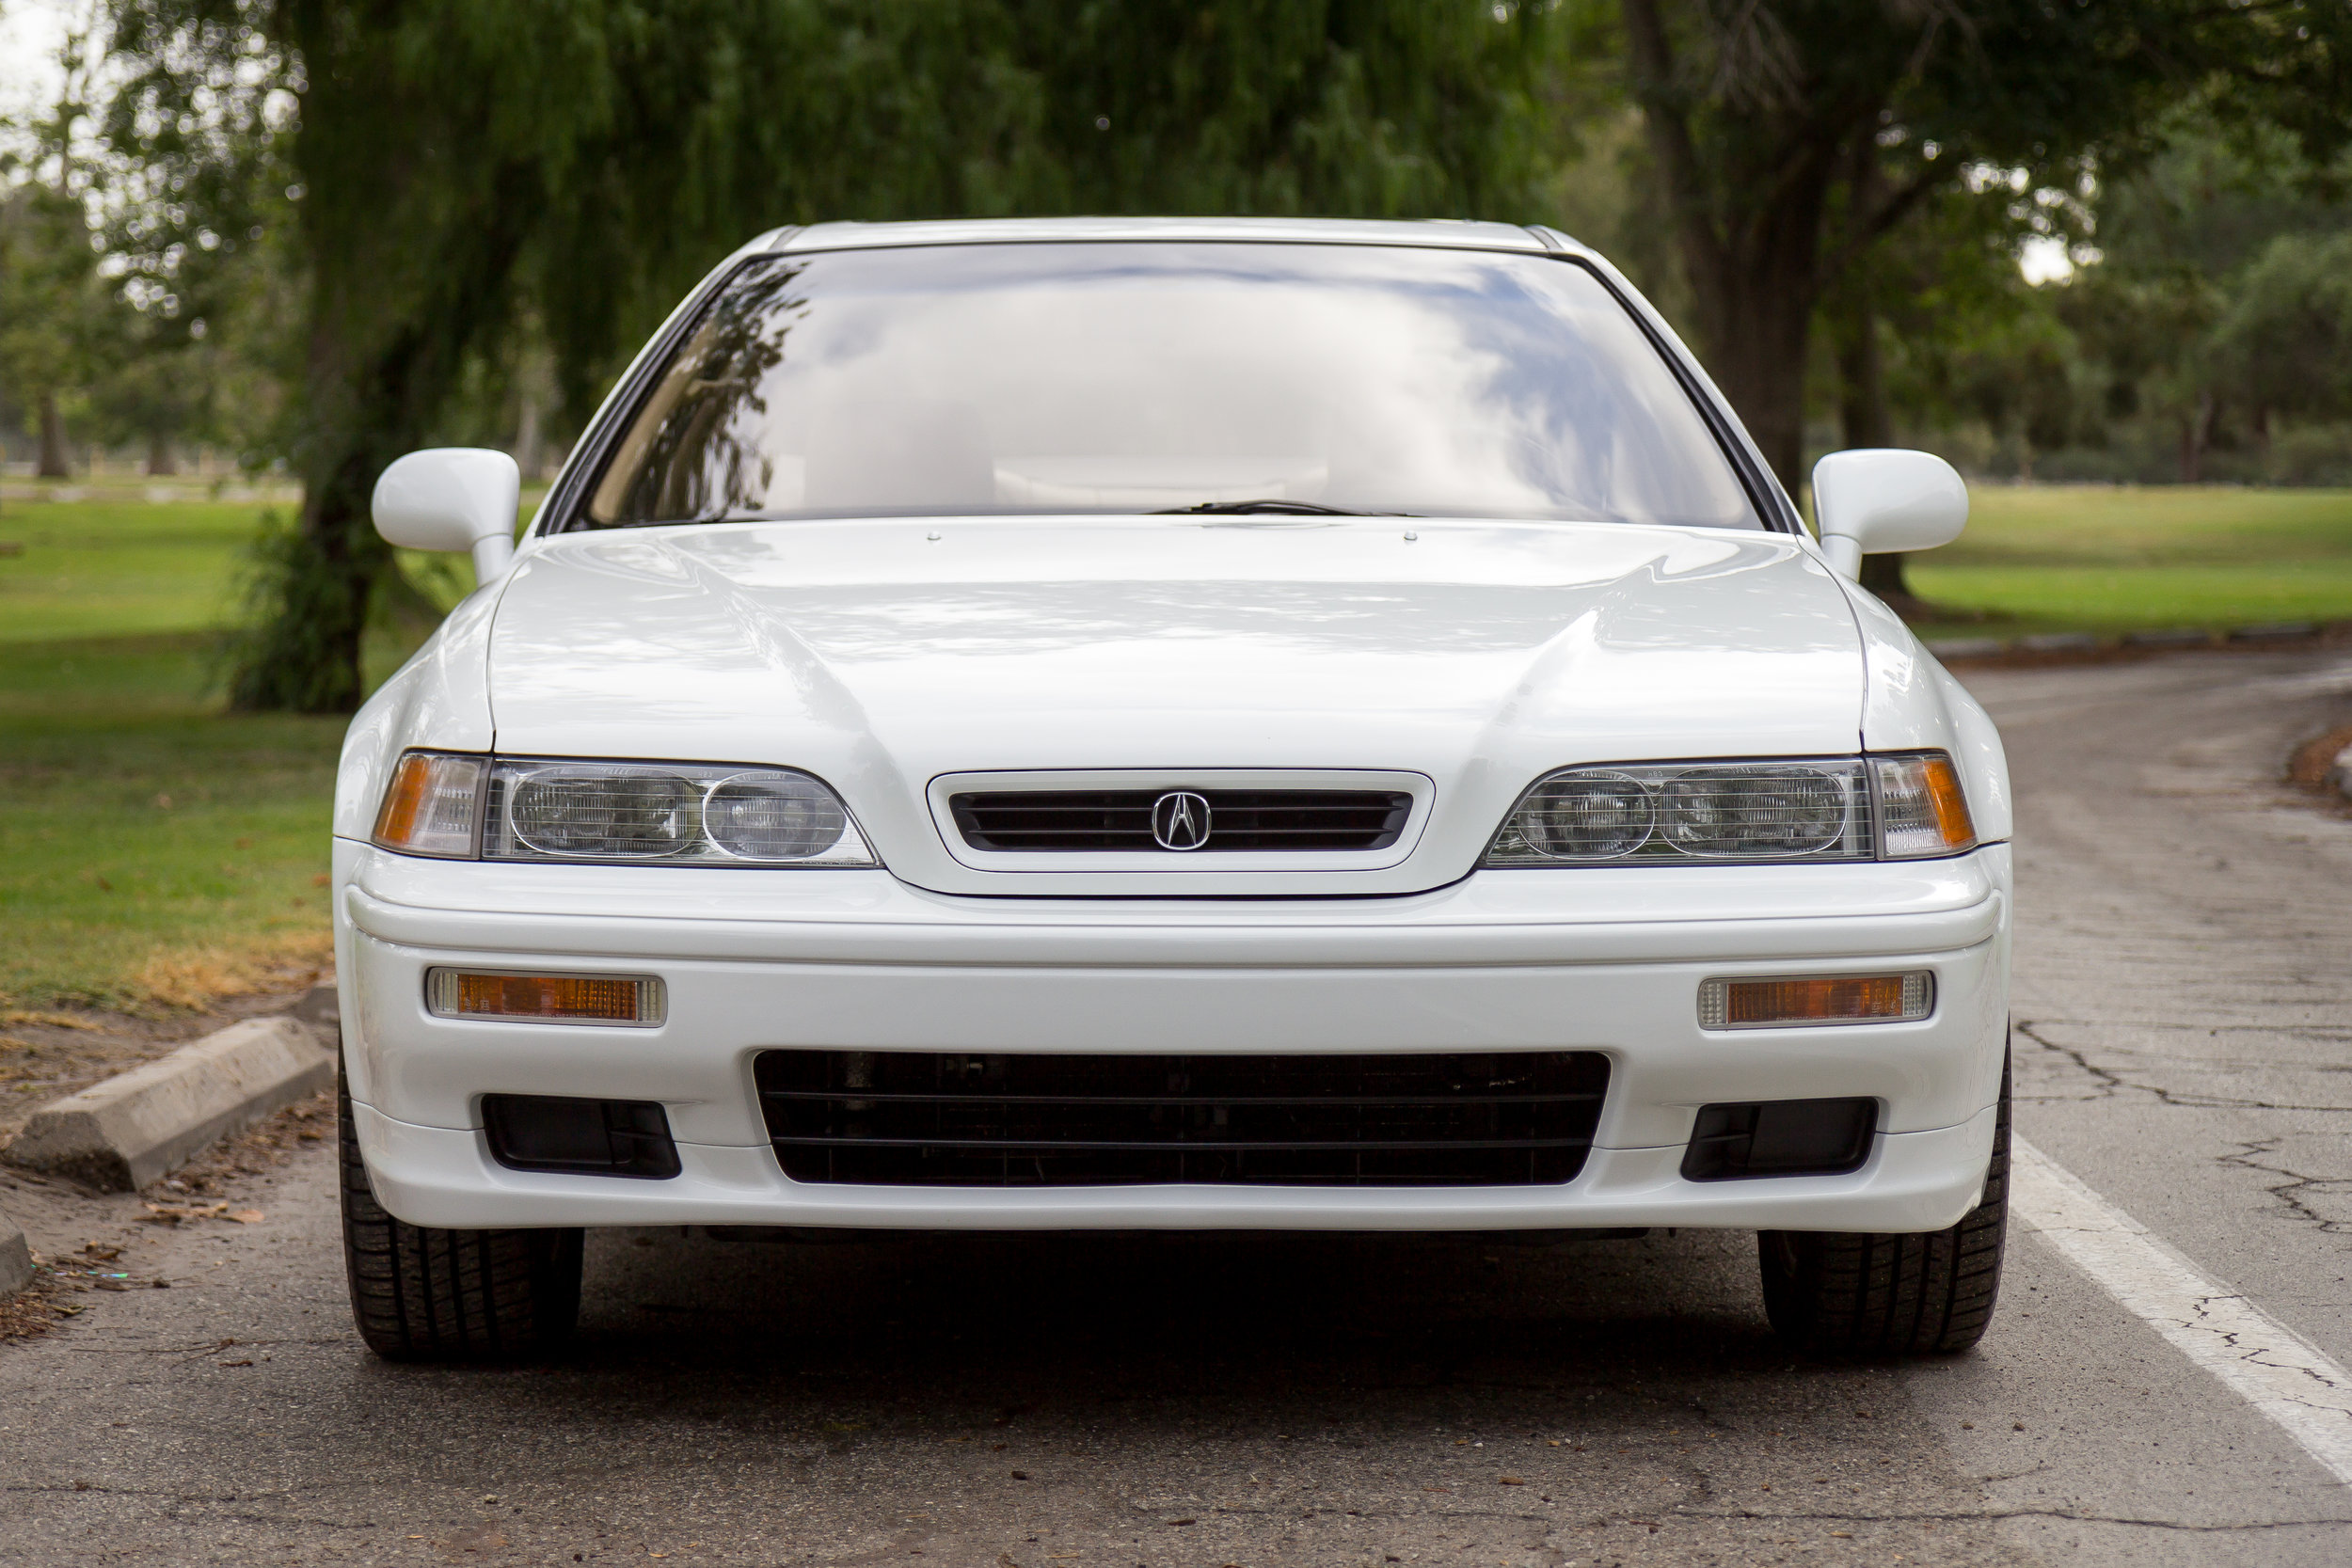 1994 Acura Legend Coupe-22.JPG